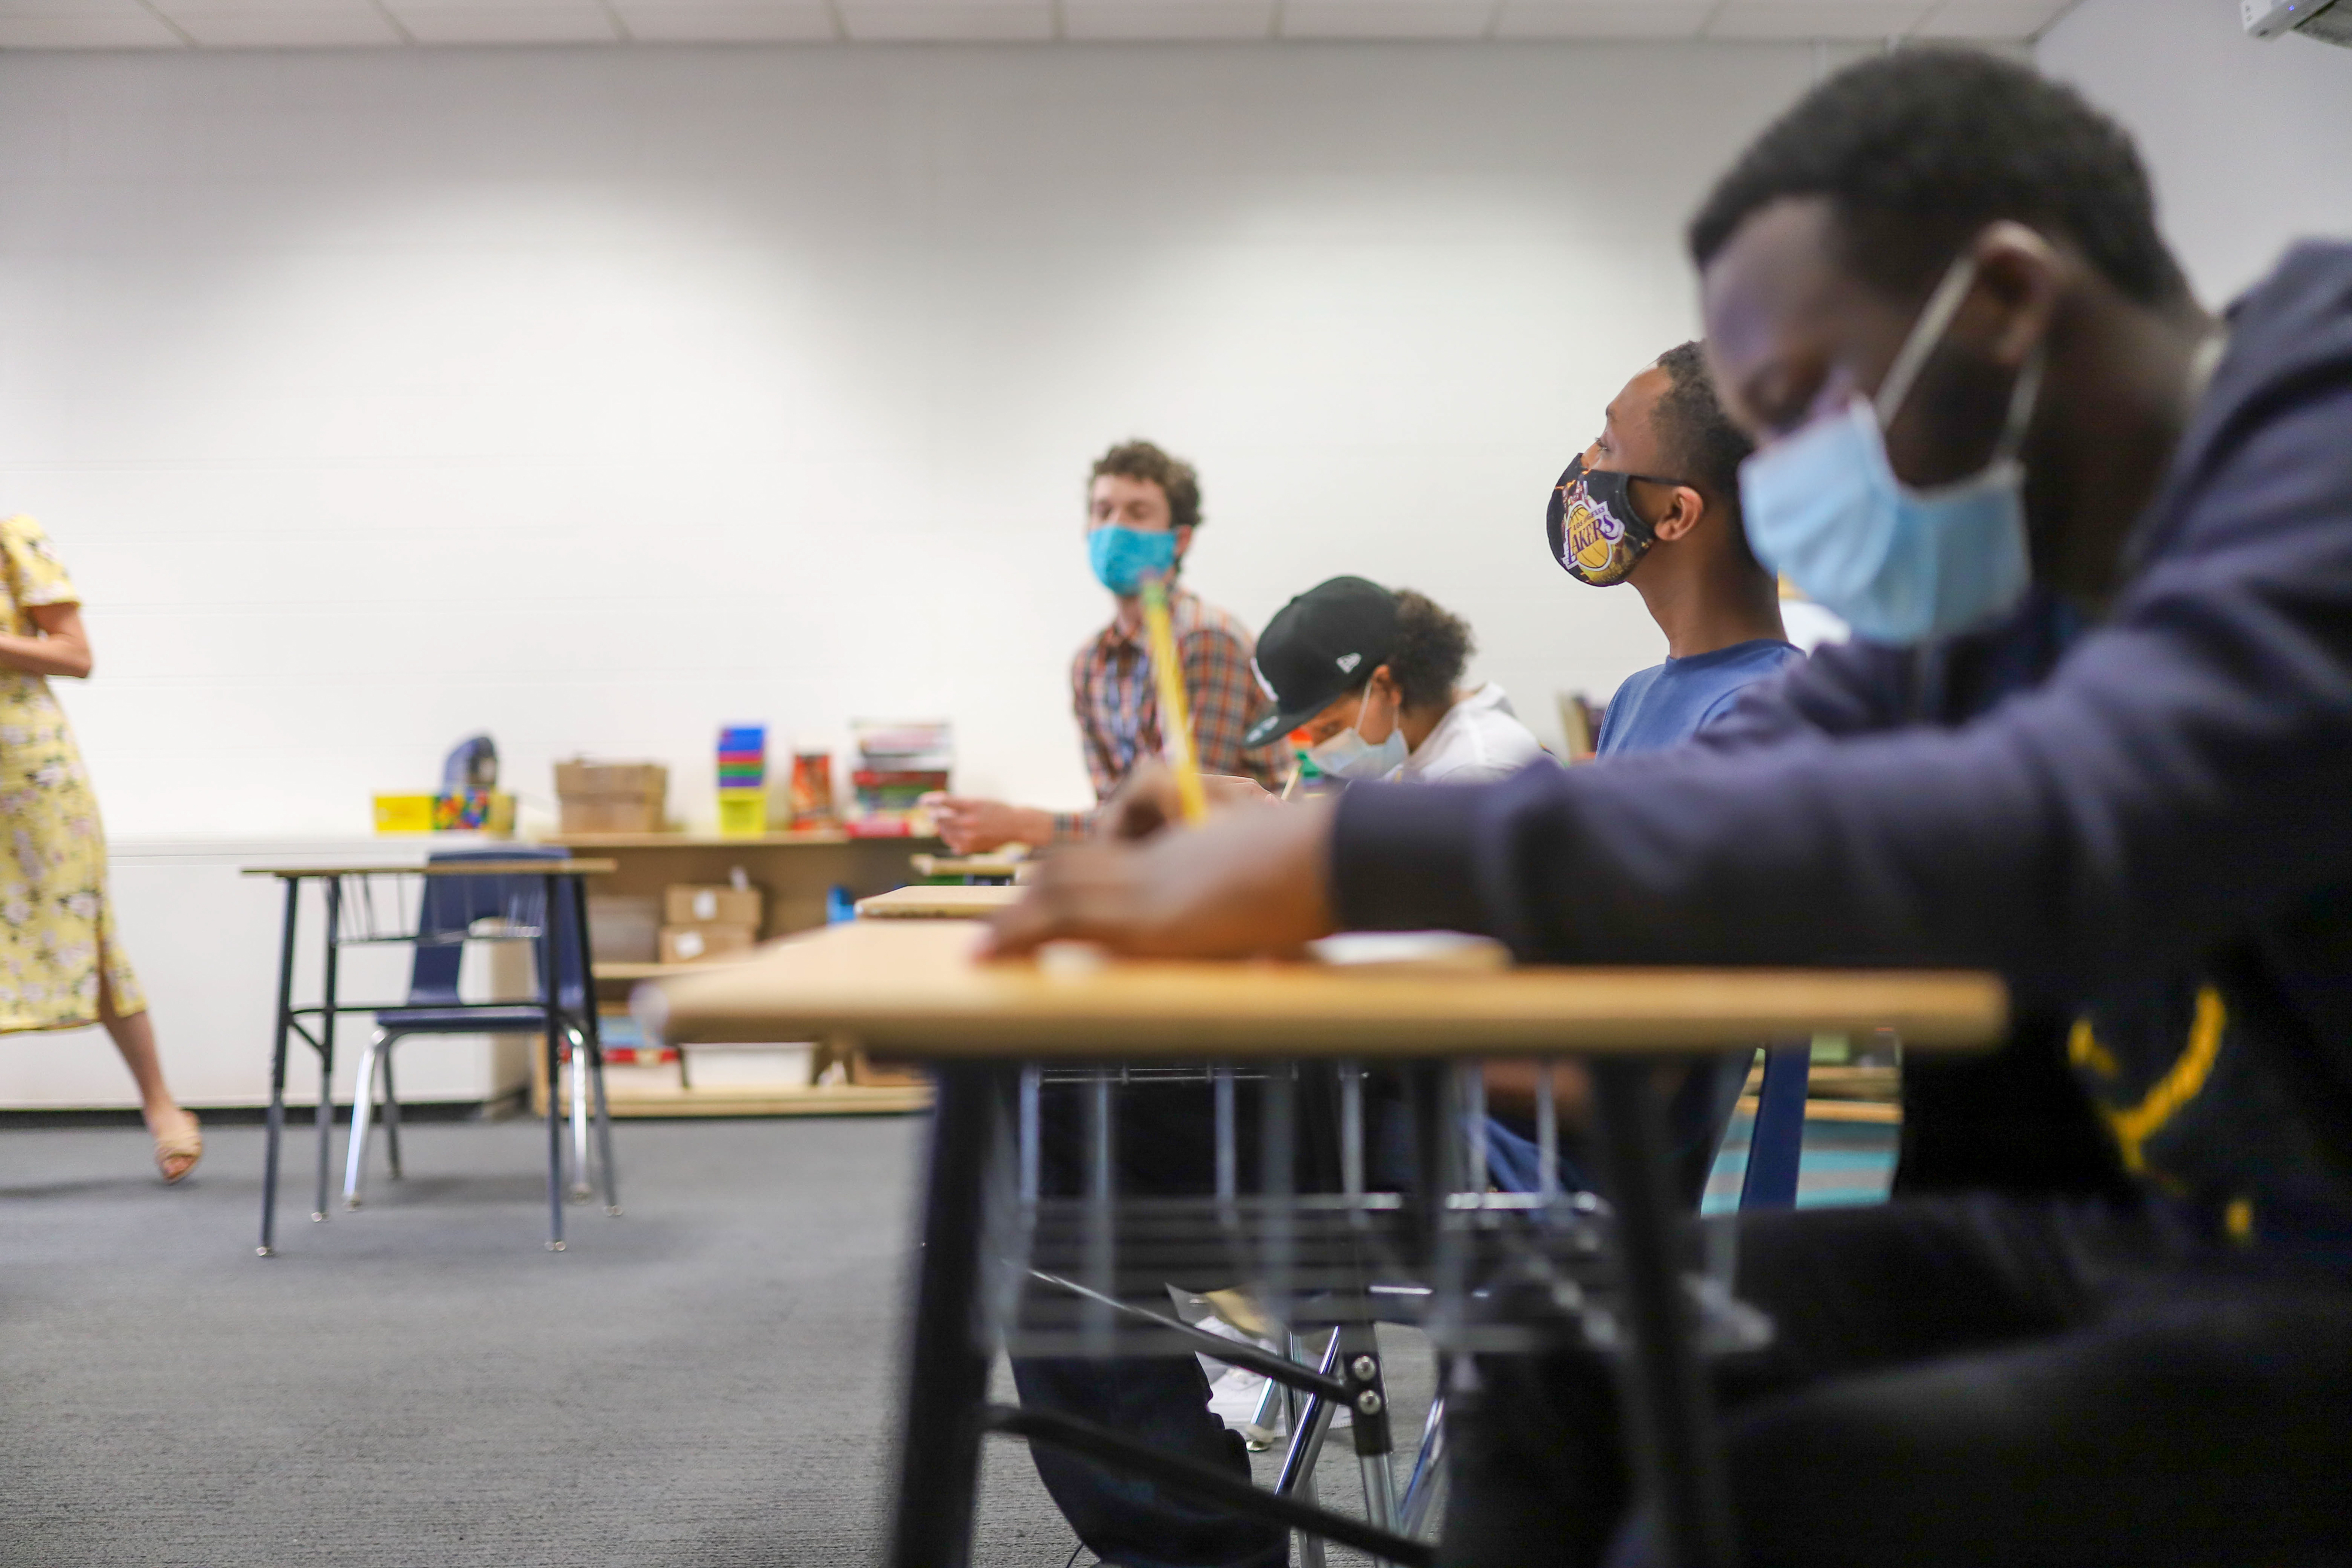 Four students wearing masks work at their desks in a classroom.